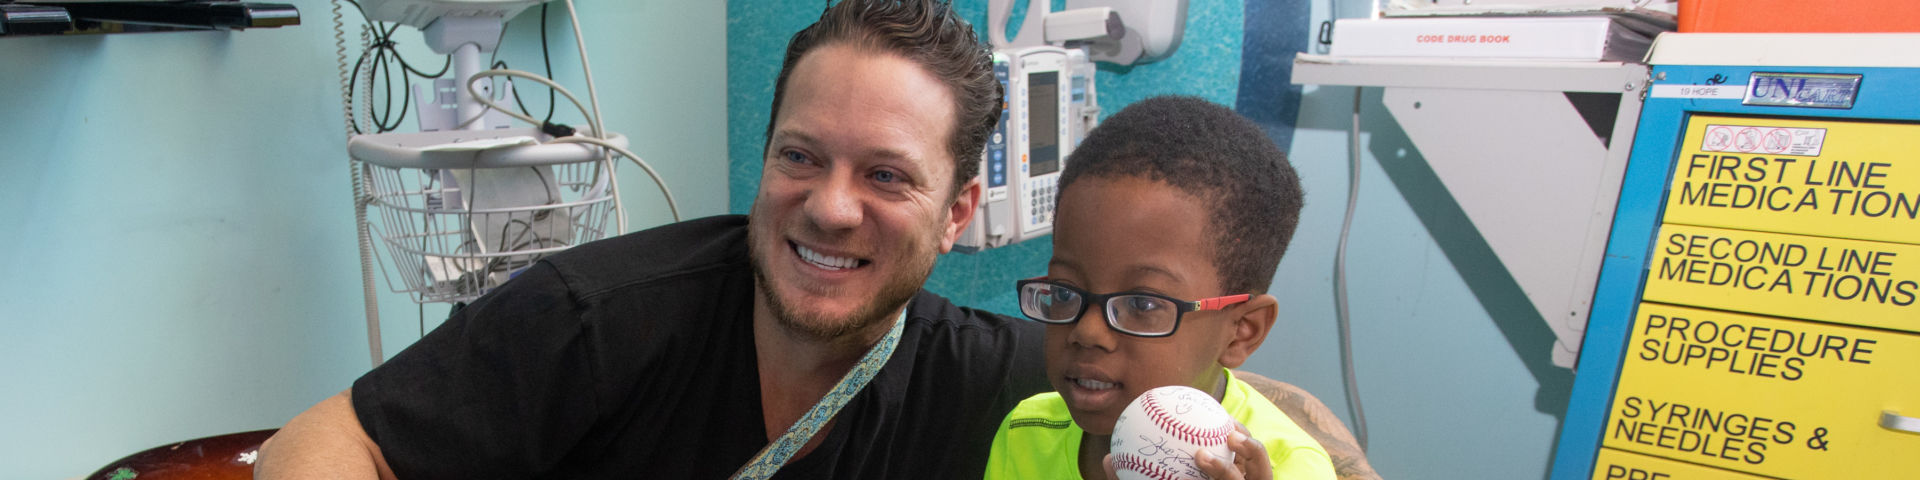 Jake Peavy at CW 191219 162437